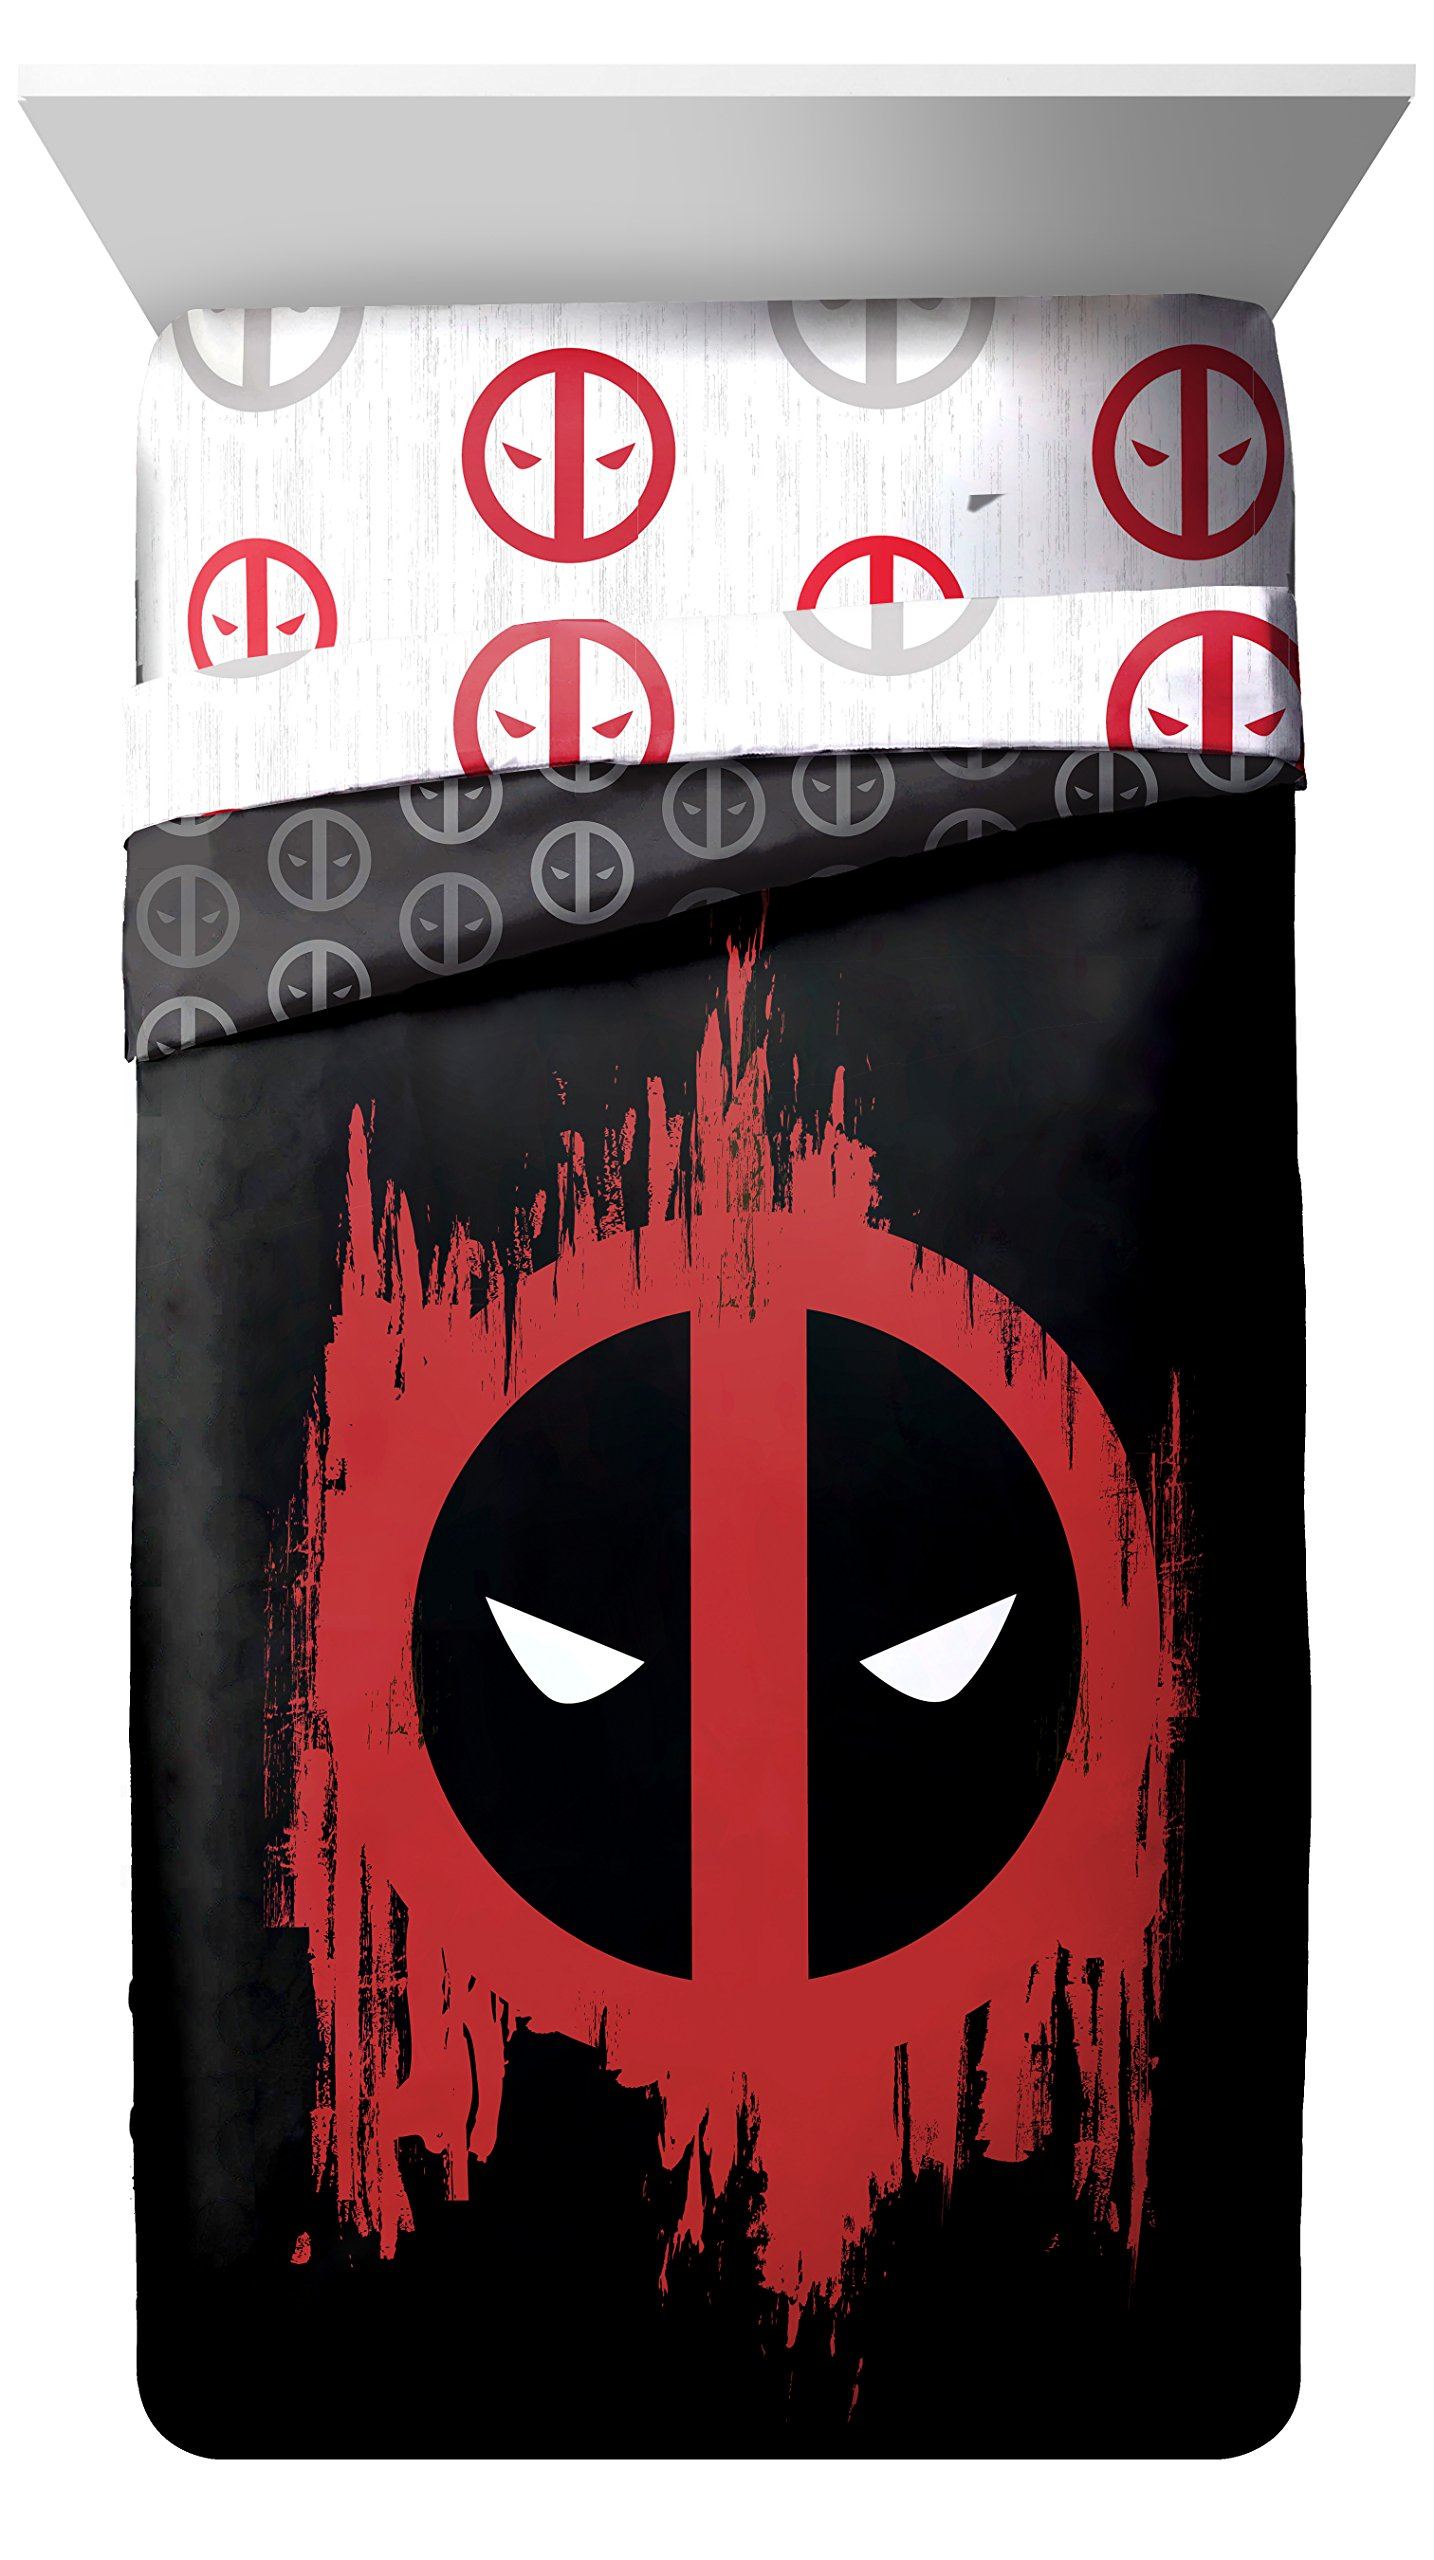 Marvel Deadpool Invasion Twin/Full Comforter - Super Soft Kids Reversible Bedding features Deadpool - Fade Resistant Polyester Microfiber Fill (Official Marvel Product) by Jay Franco